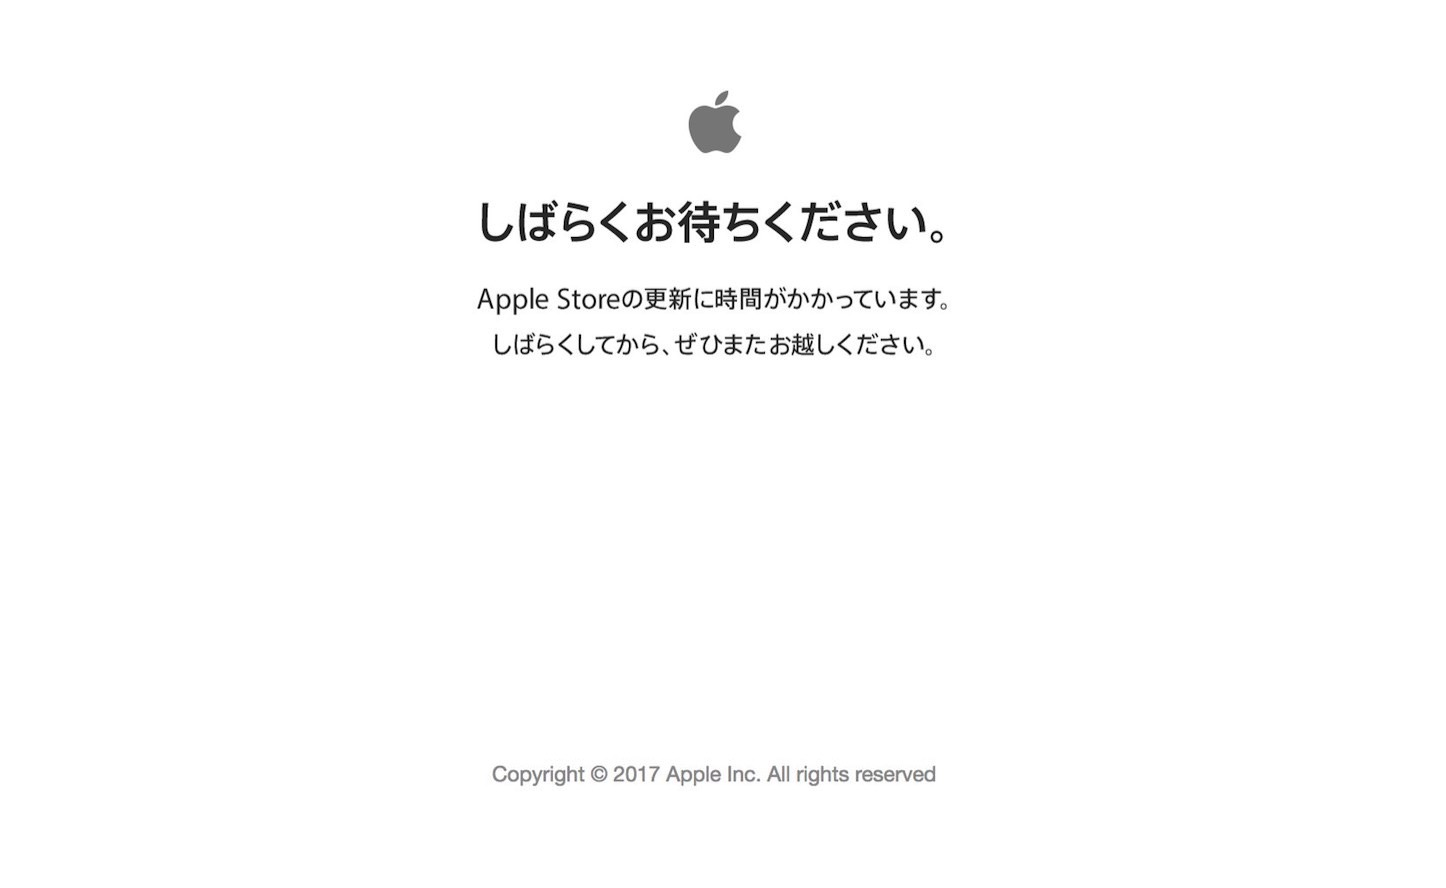 Apple Down for Event